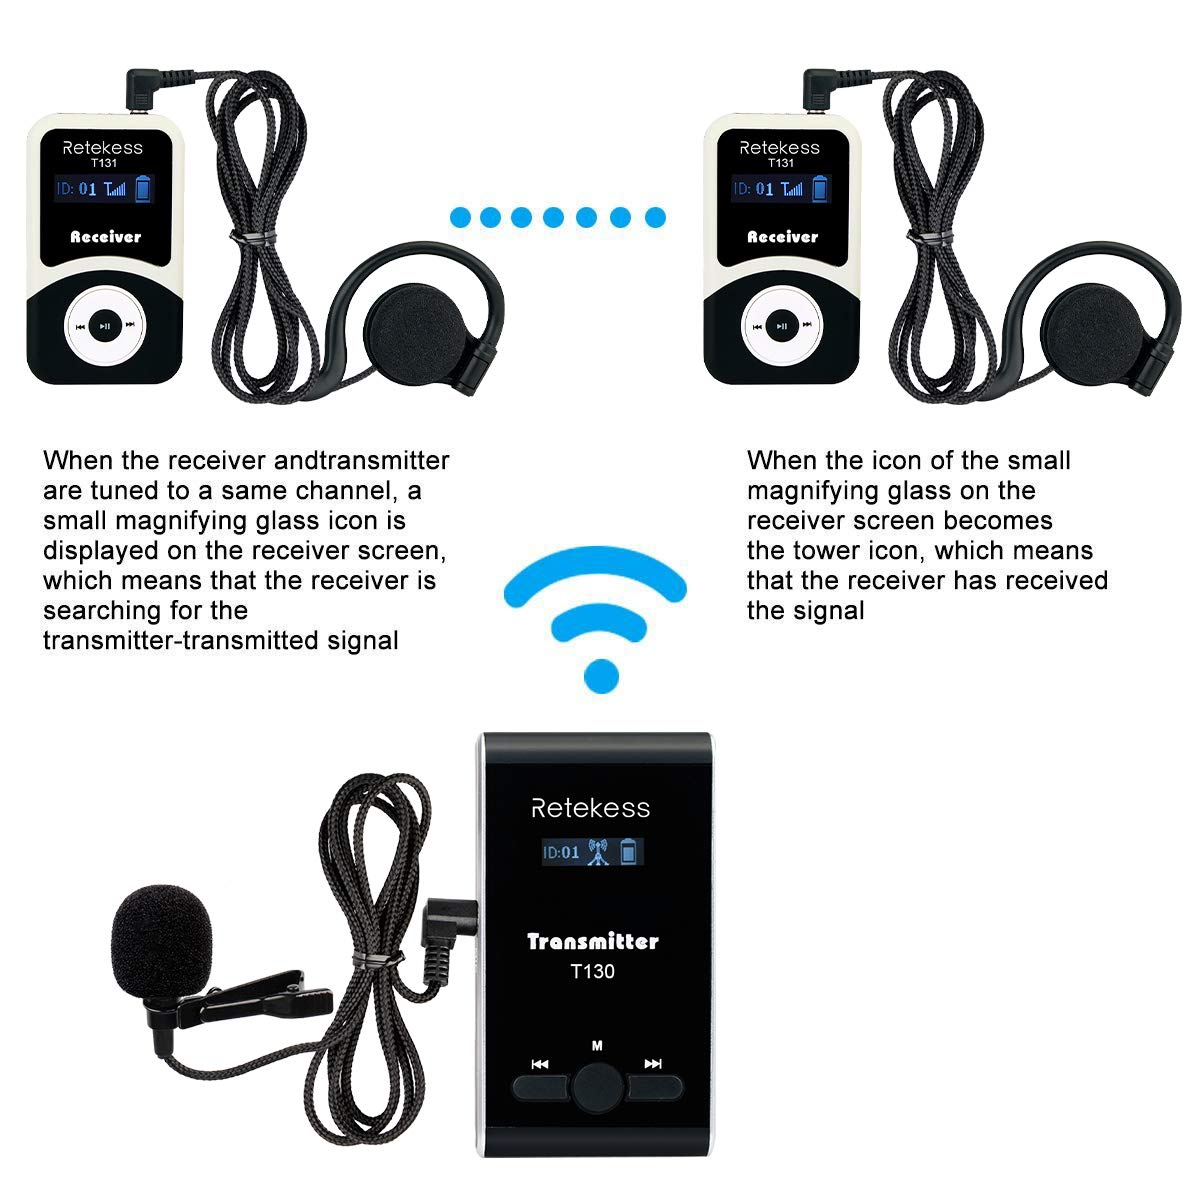 Retekess T130 99 Channel Wireless Tour Guide System Microphone Earphone Headset Church Translation System for Church Interpretation Wedding Training Court (1 Transmitter and 15 Receivers) by Retekess  (Image #6)